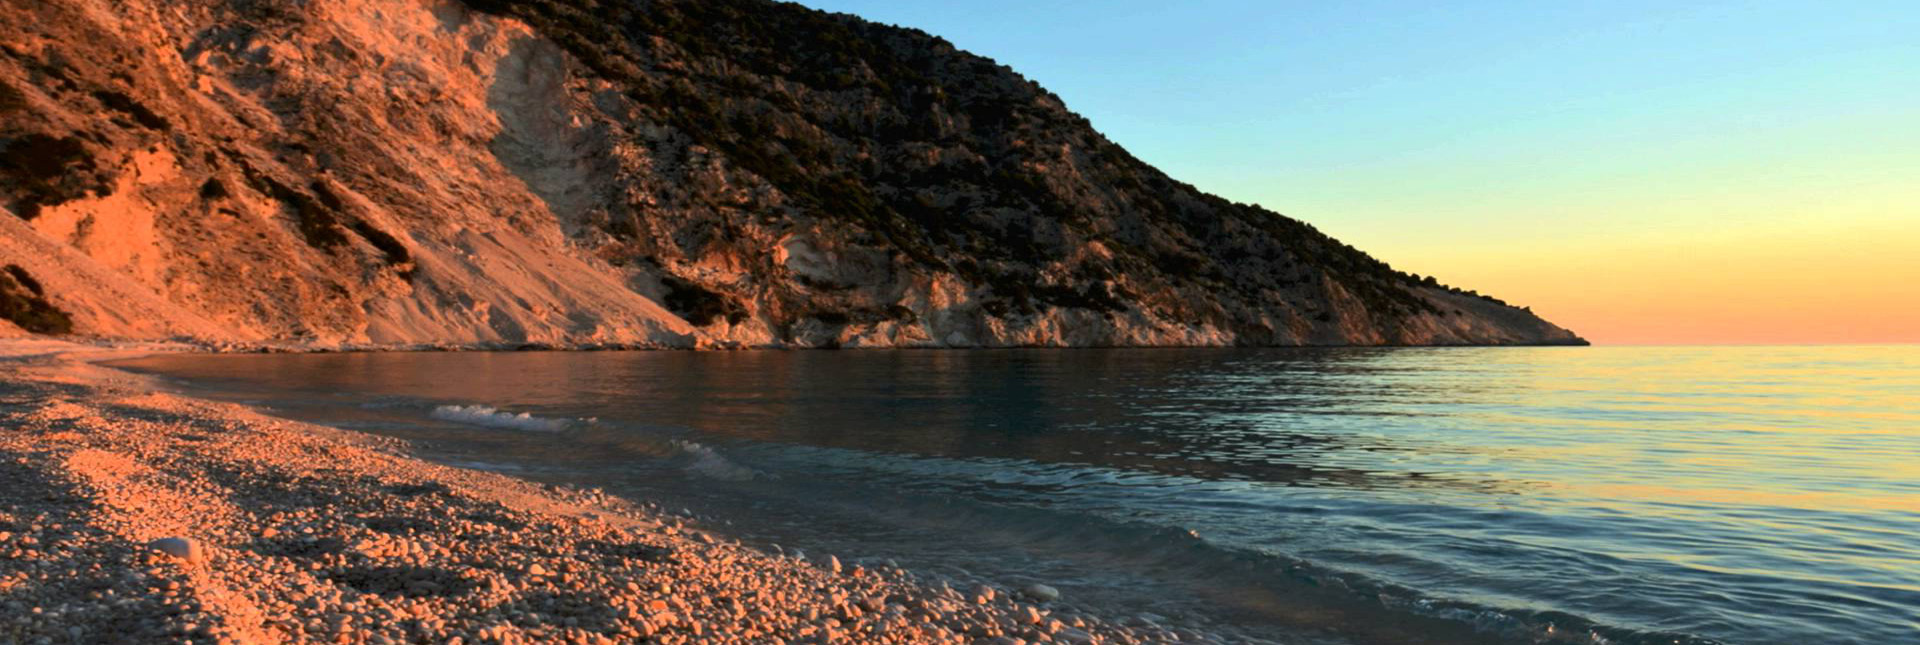 <h2>STUDIOS TO LET ALKYONI - POROS, KEFALONIA, GREECE</h2><p>Spend a dream vacation in one of the most beautiful islands of the Ionian</p><div class='bgslideshowmore'><a href='http://www.alkyonistudios.gr/more.php?l=en' >More...</a></div>